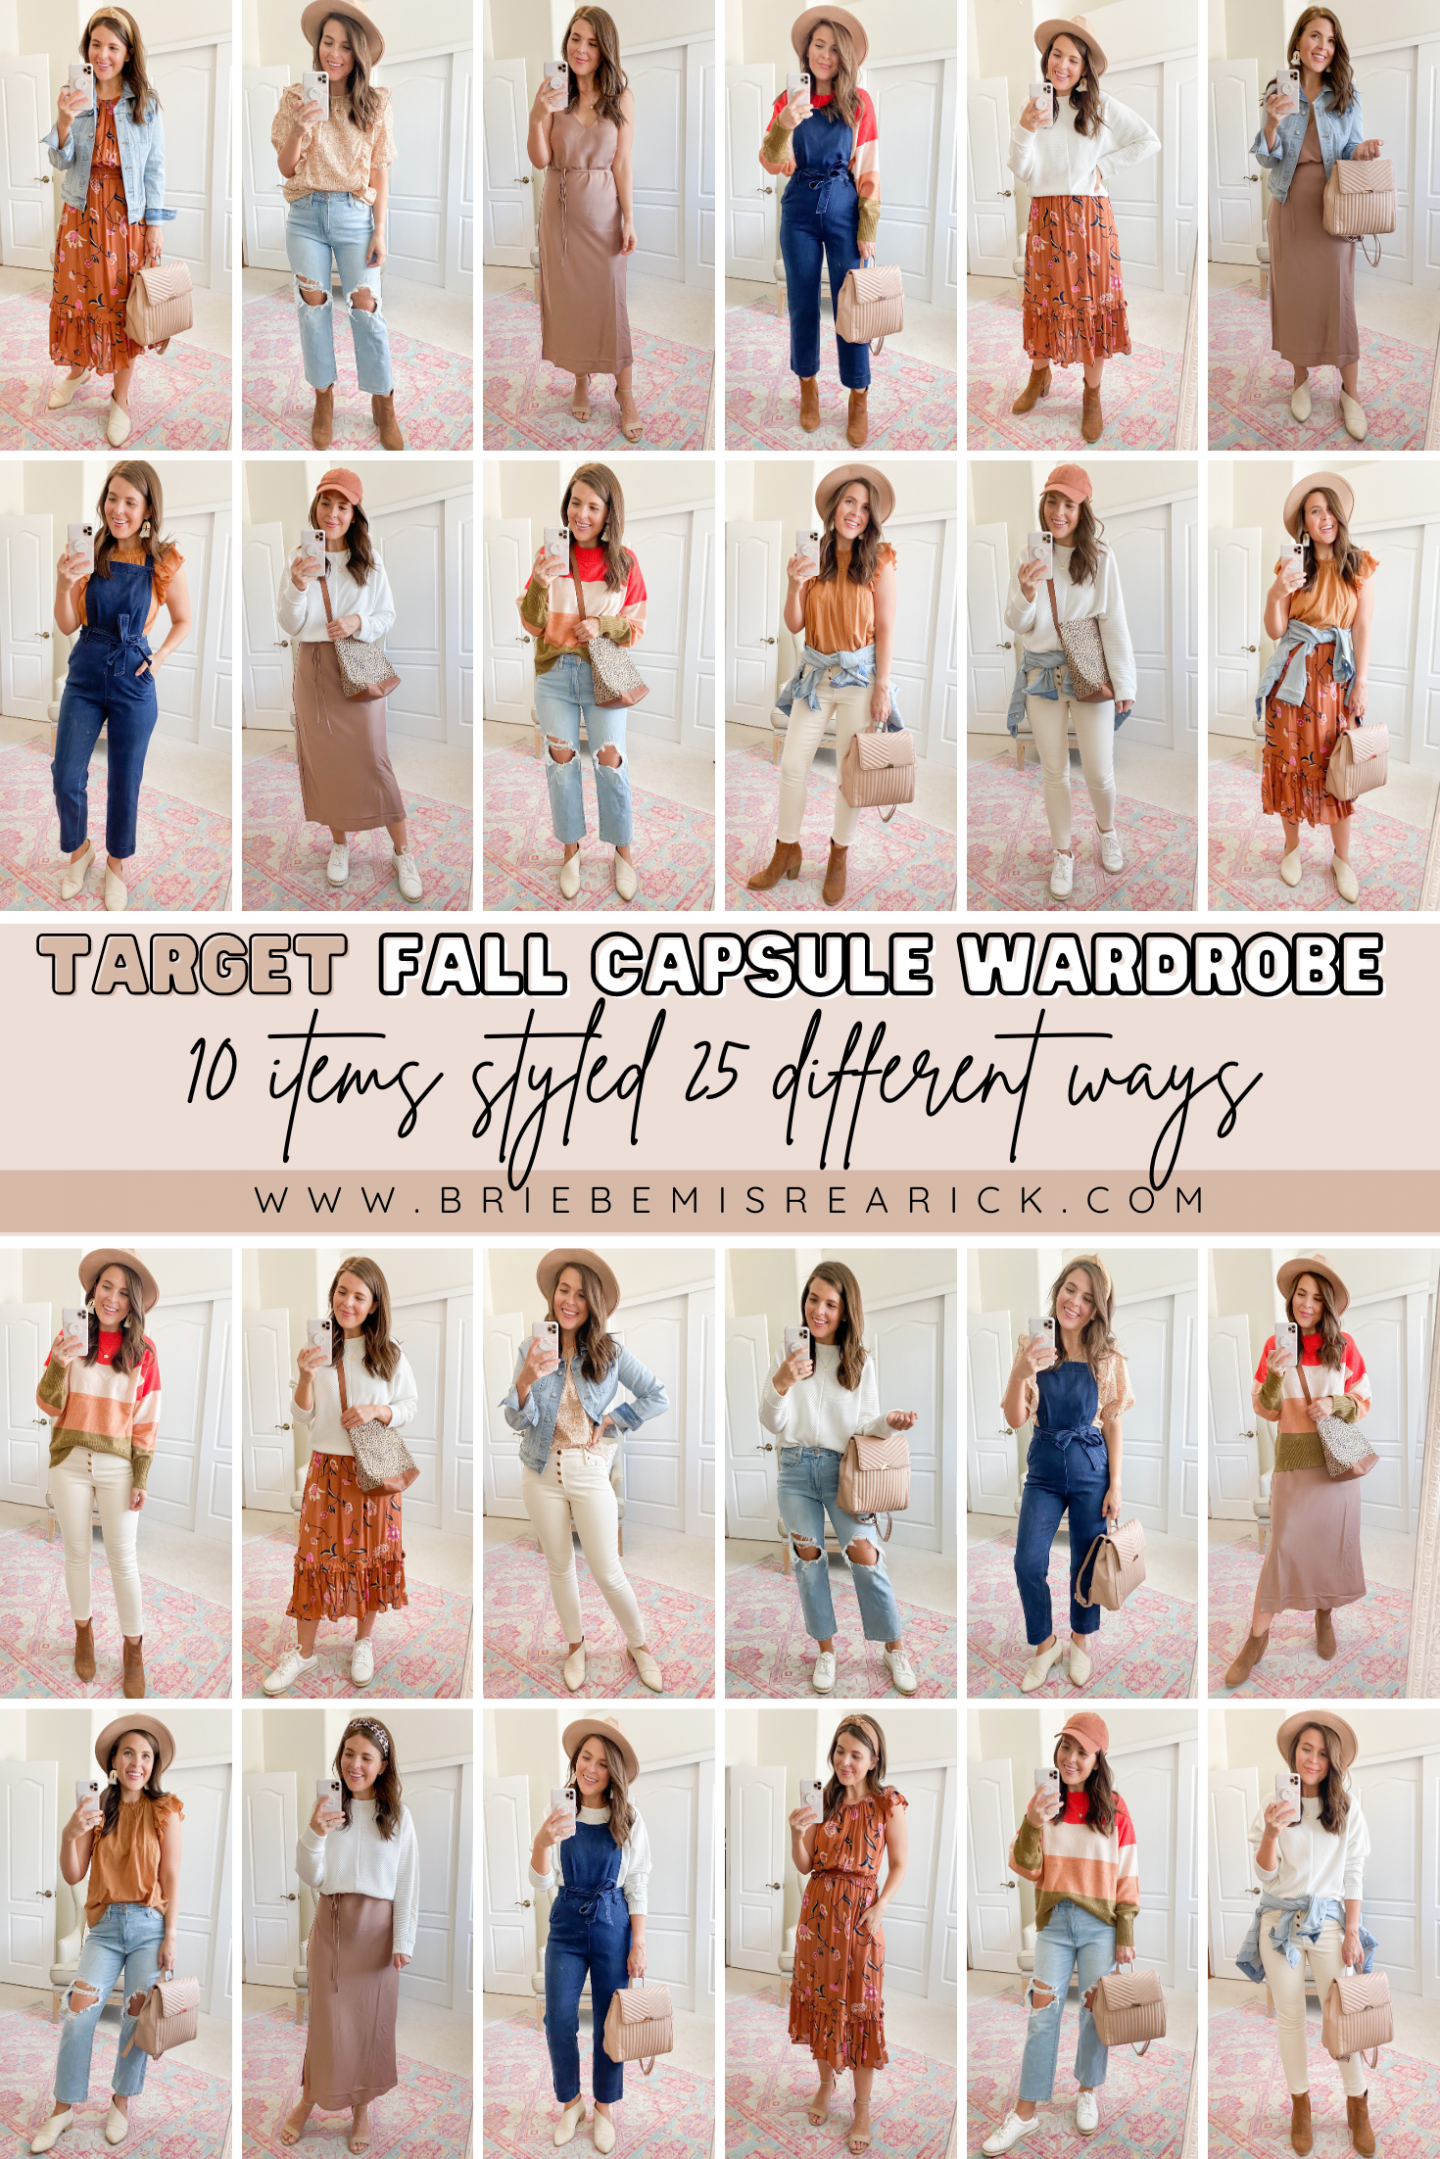 Target Fall Capsule Wardrobe: 10 Items Styled 25 Ways